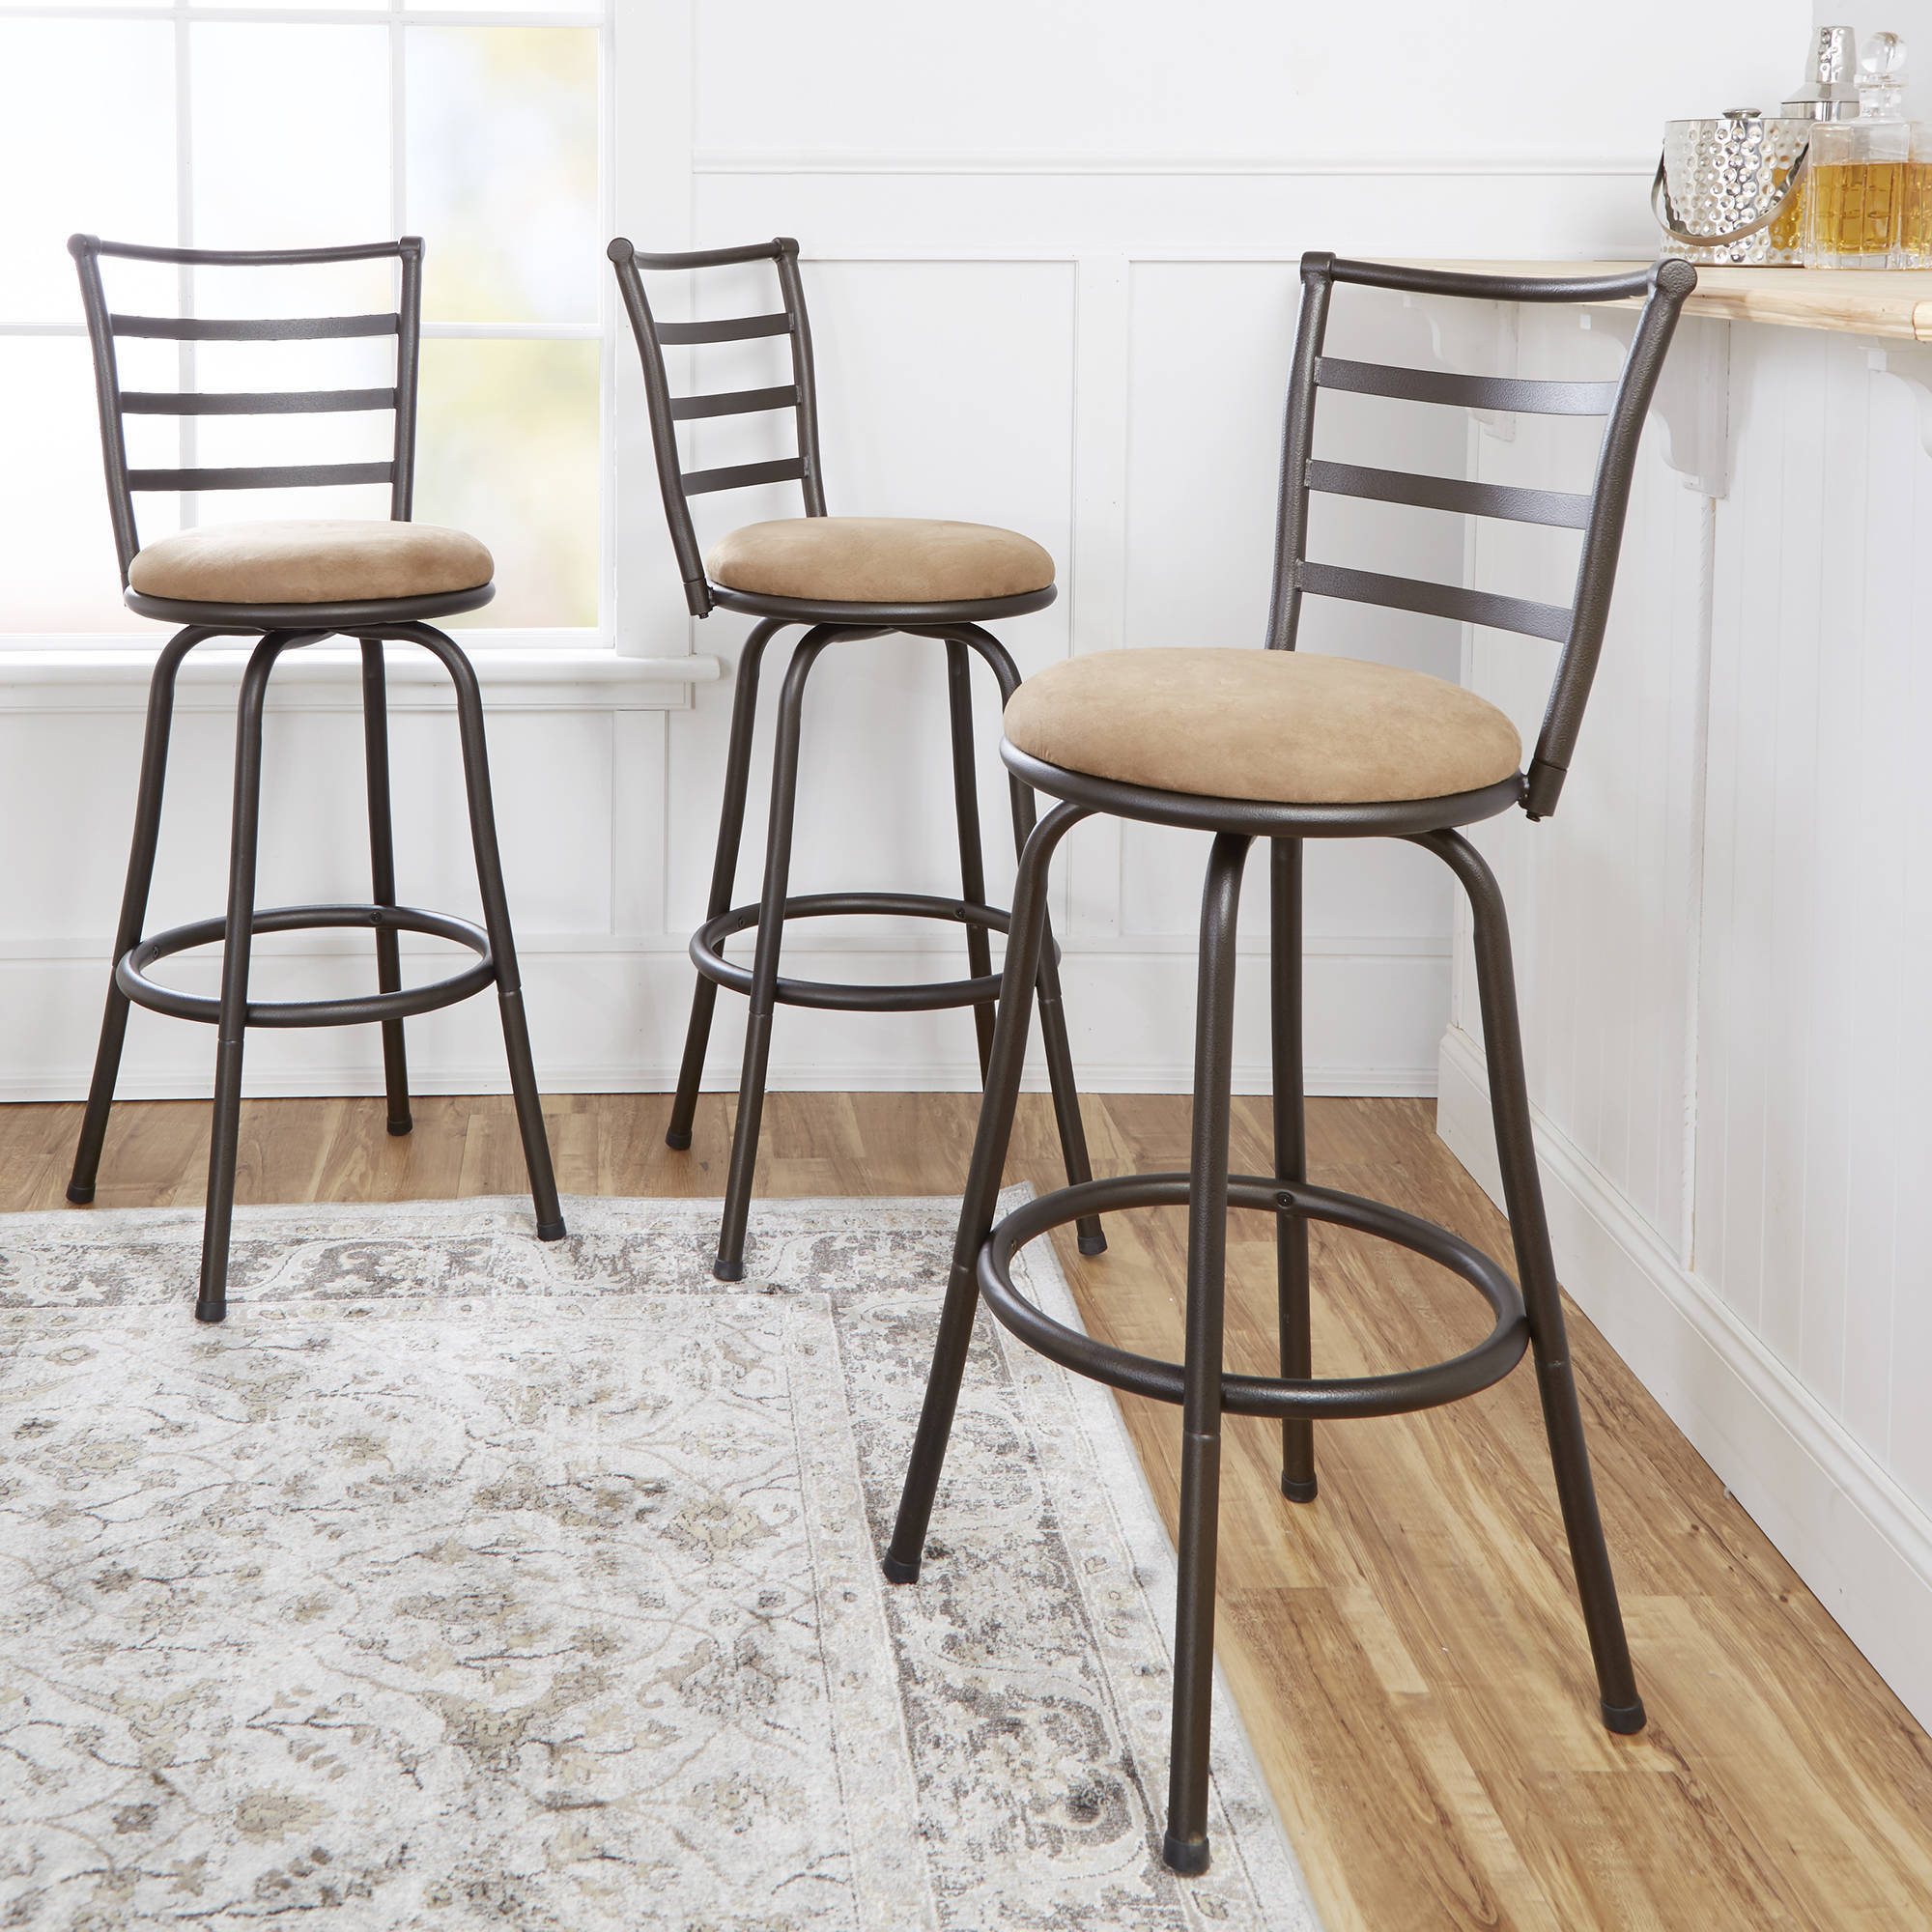 Mainstays Adjustable Height Swivel Barstool Hammered